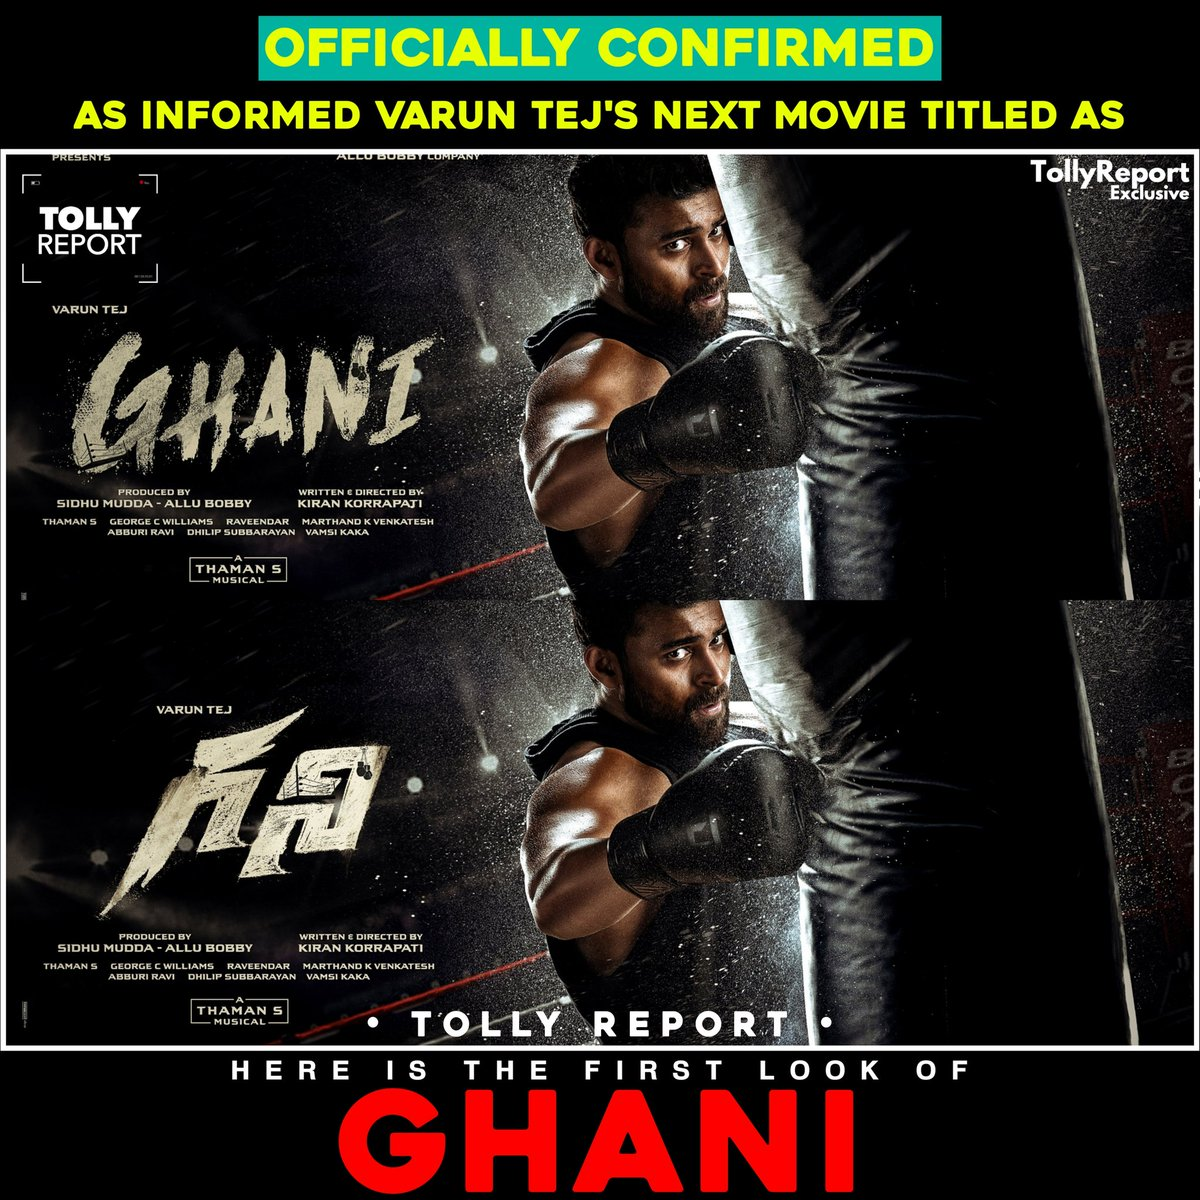 VARUN TEJ: #GHANI FIRST LOOK... #VarunTej as #Ghani... The #Telugu film costars #SaieeManjrekar, #Upendra and #SunielShetty... Directed by Kiran Korrapati... Produced by Allu Bobby and Sidhu Mudda... #AlluAravind presentation. #HappyBirthdayVarunTej